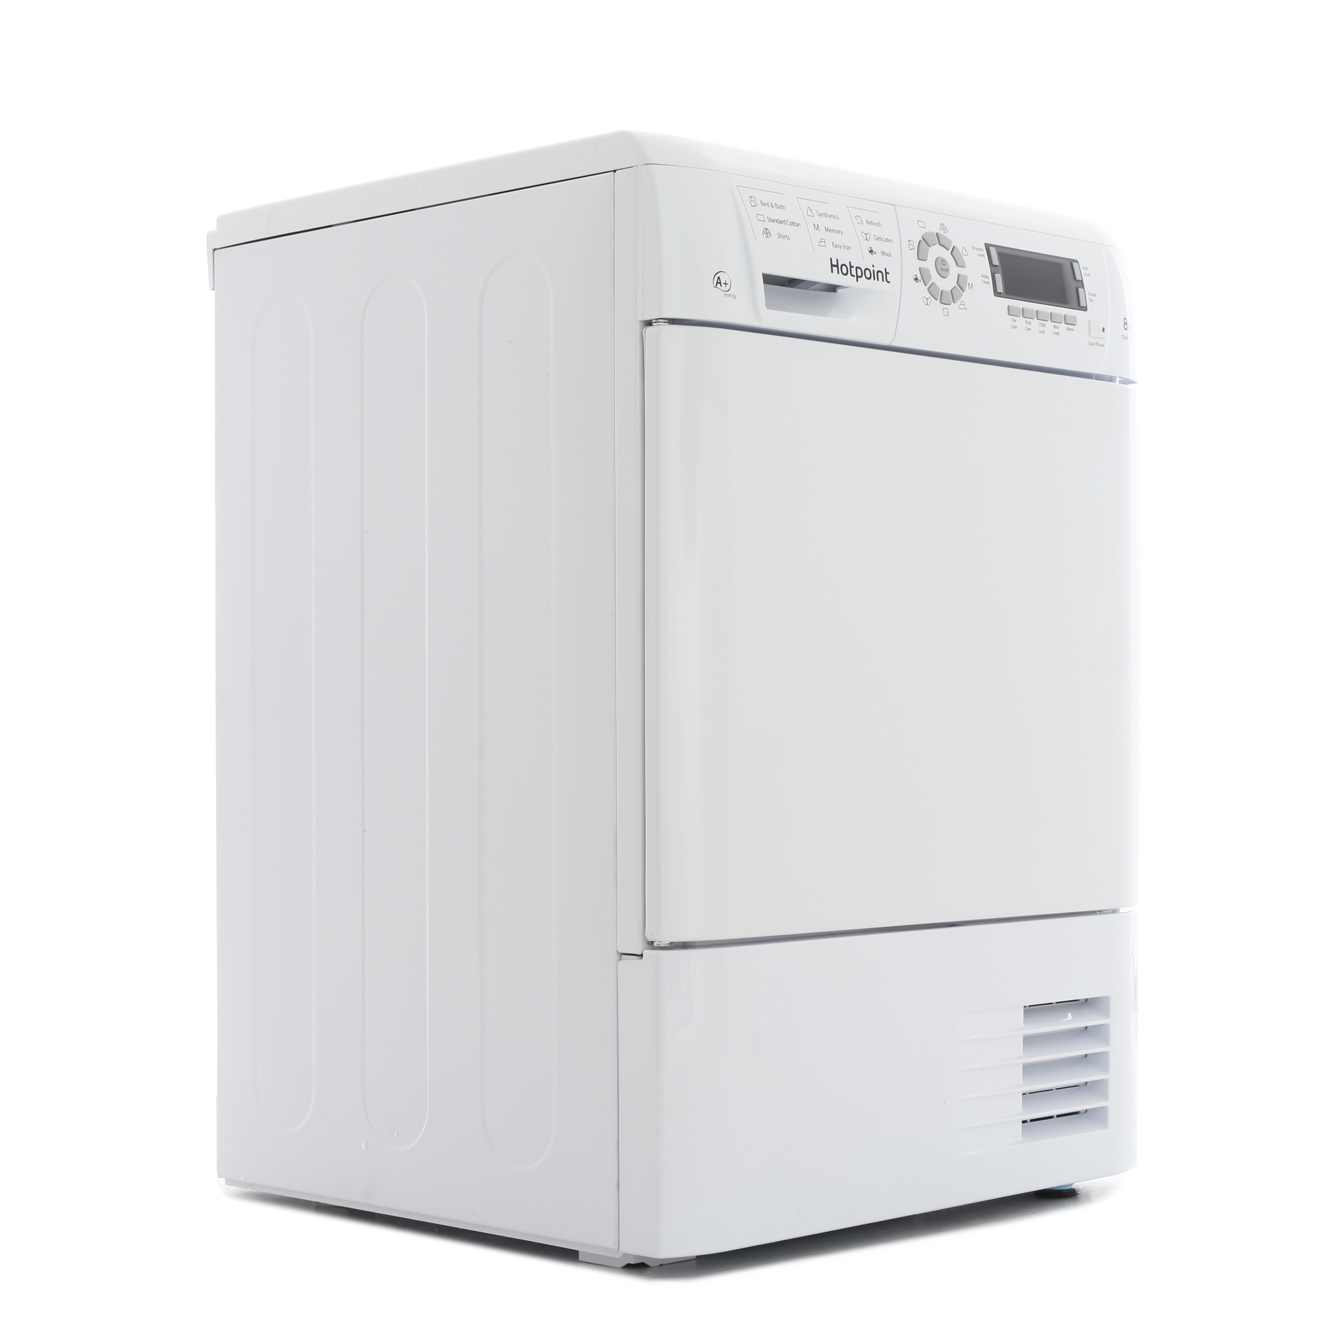 Hotpoint TDHP871RP Condenser Dryer with Heat Pump Technology